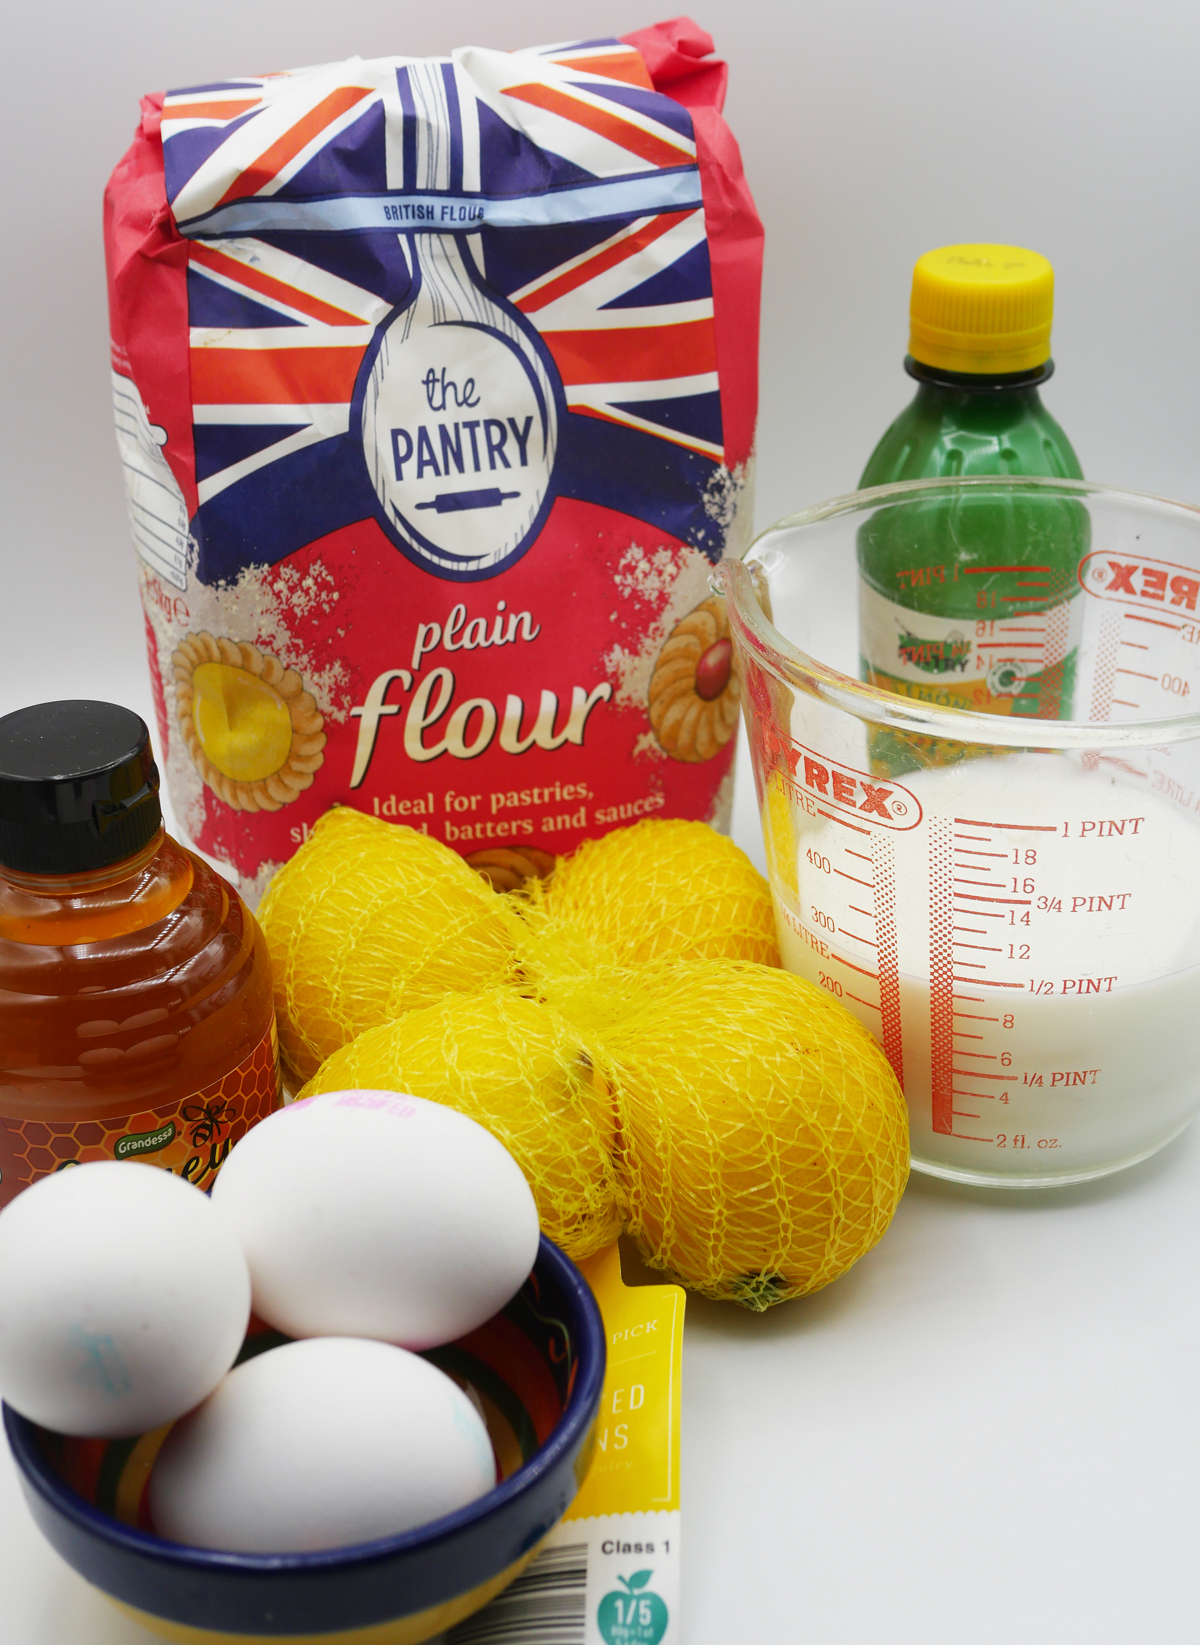 Pancake ingredients for one or two